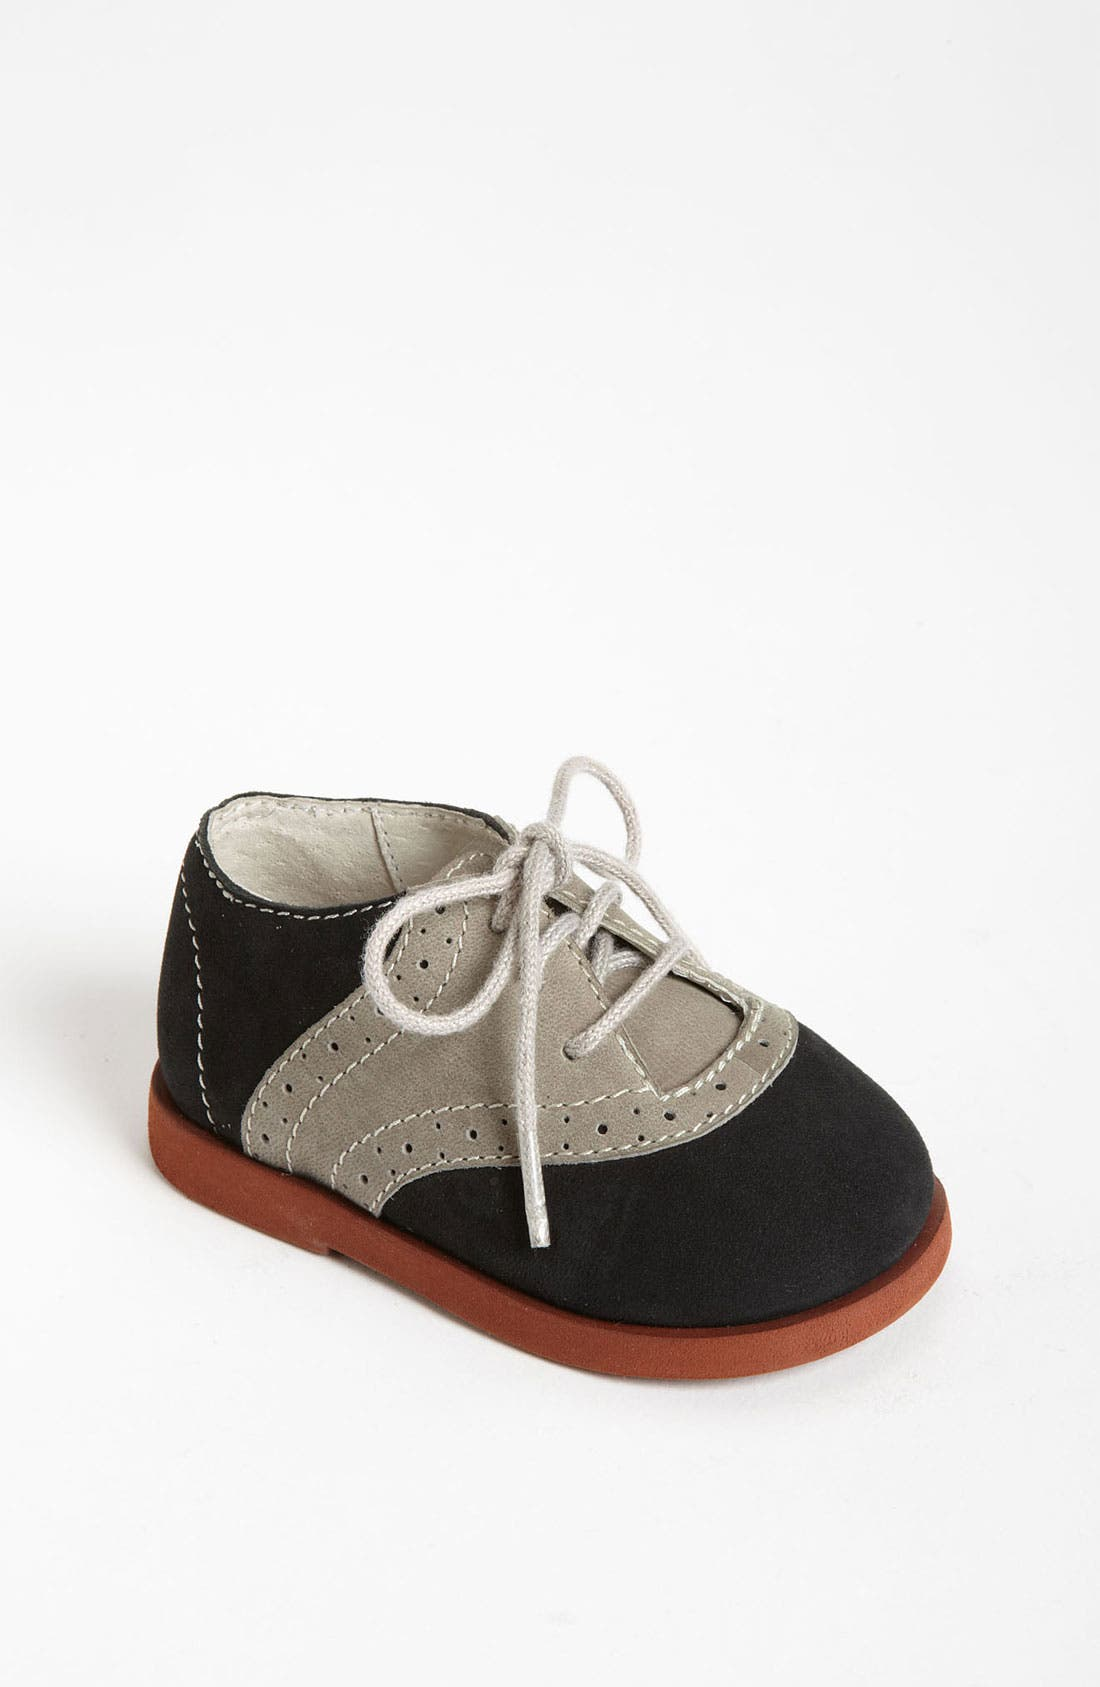 Alternate Image 1 Selected - Nordstrom Baby 'Wesley' Saddle Shoe (Baby)